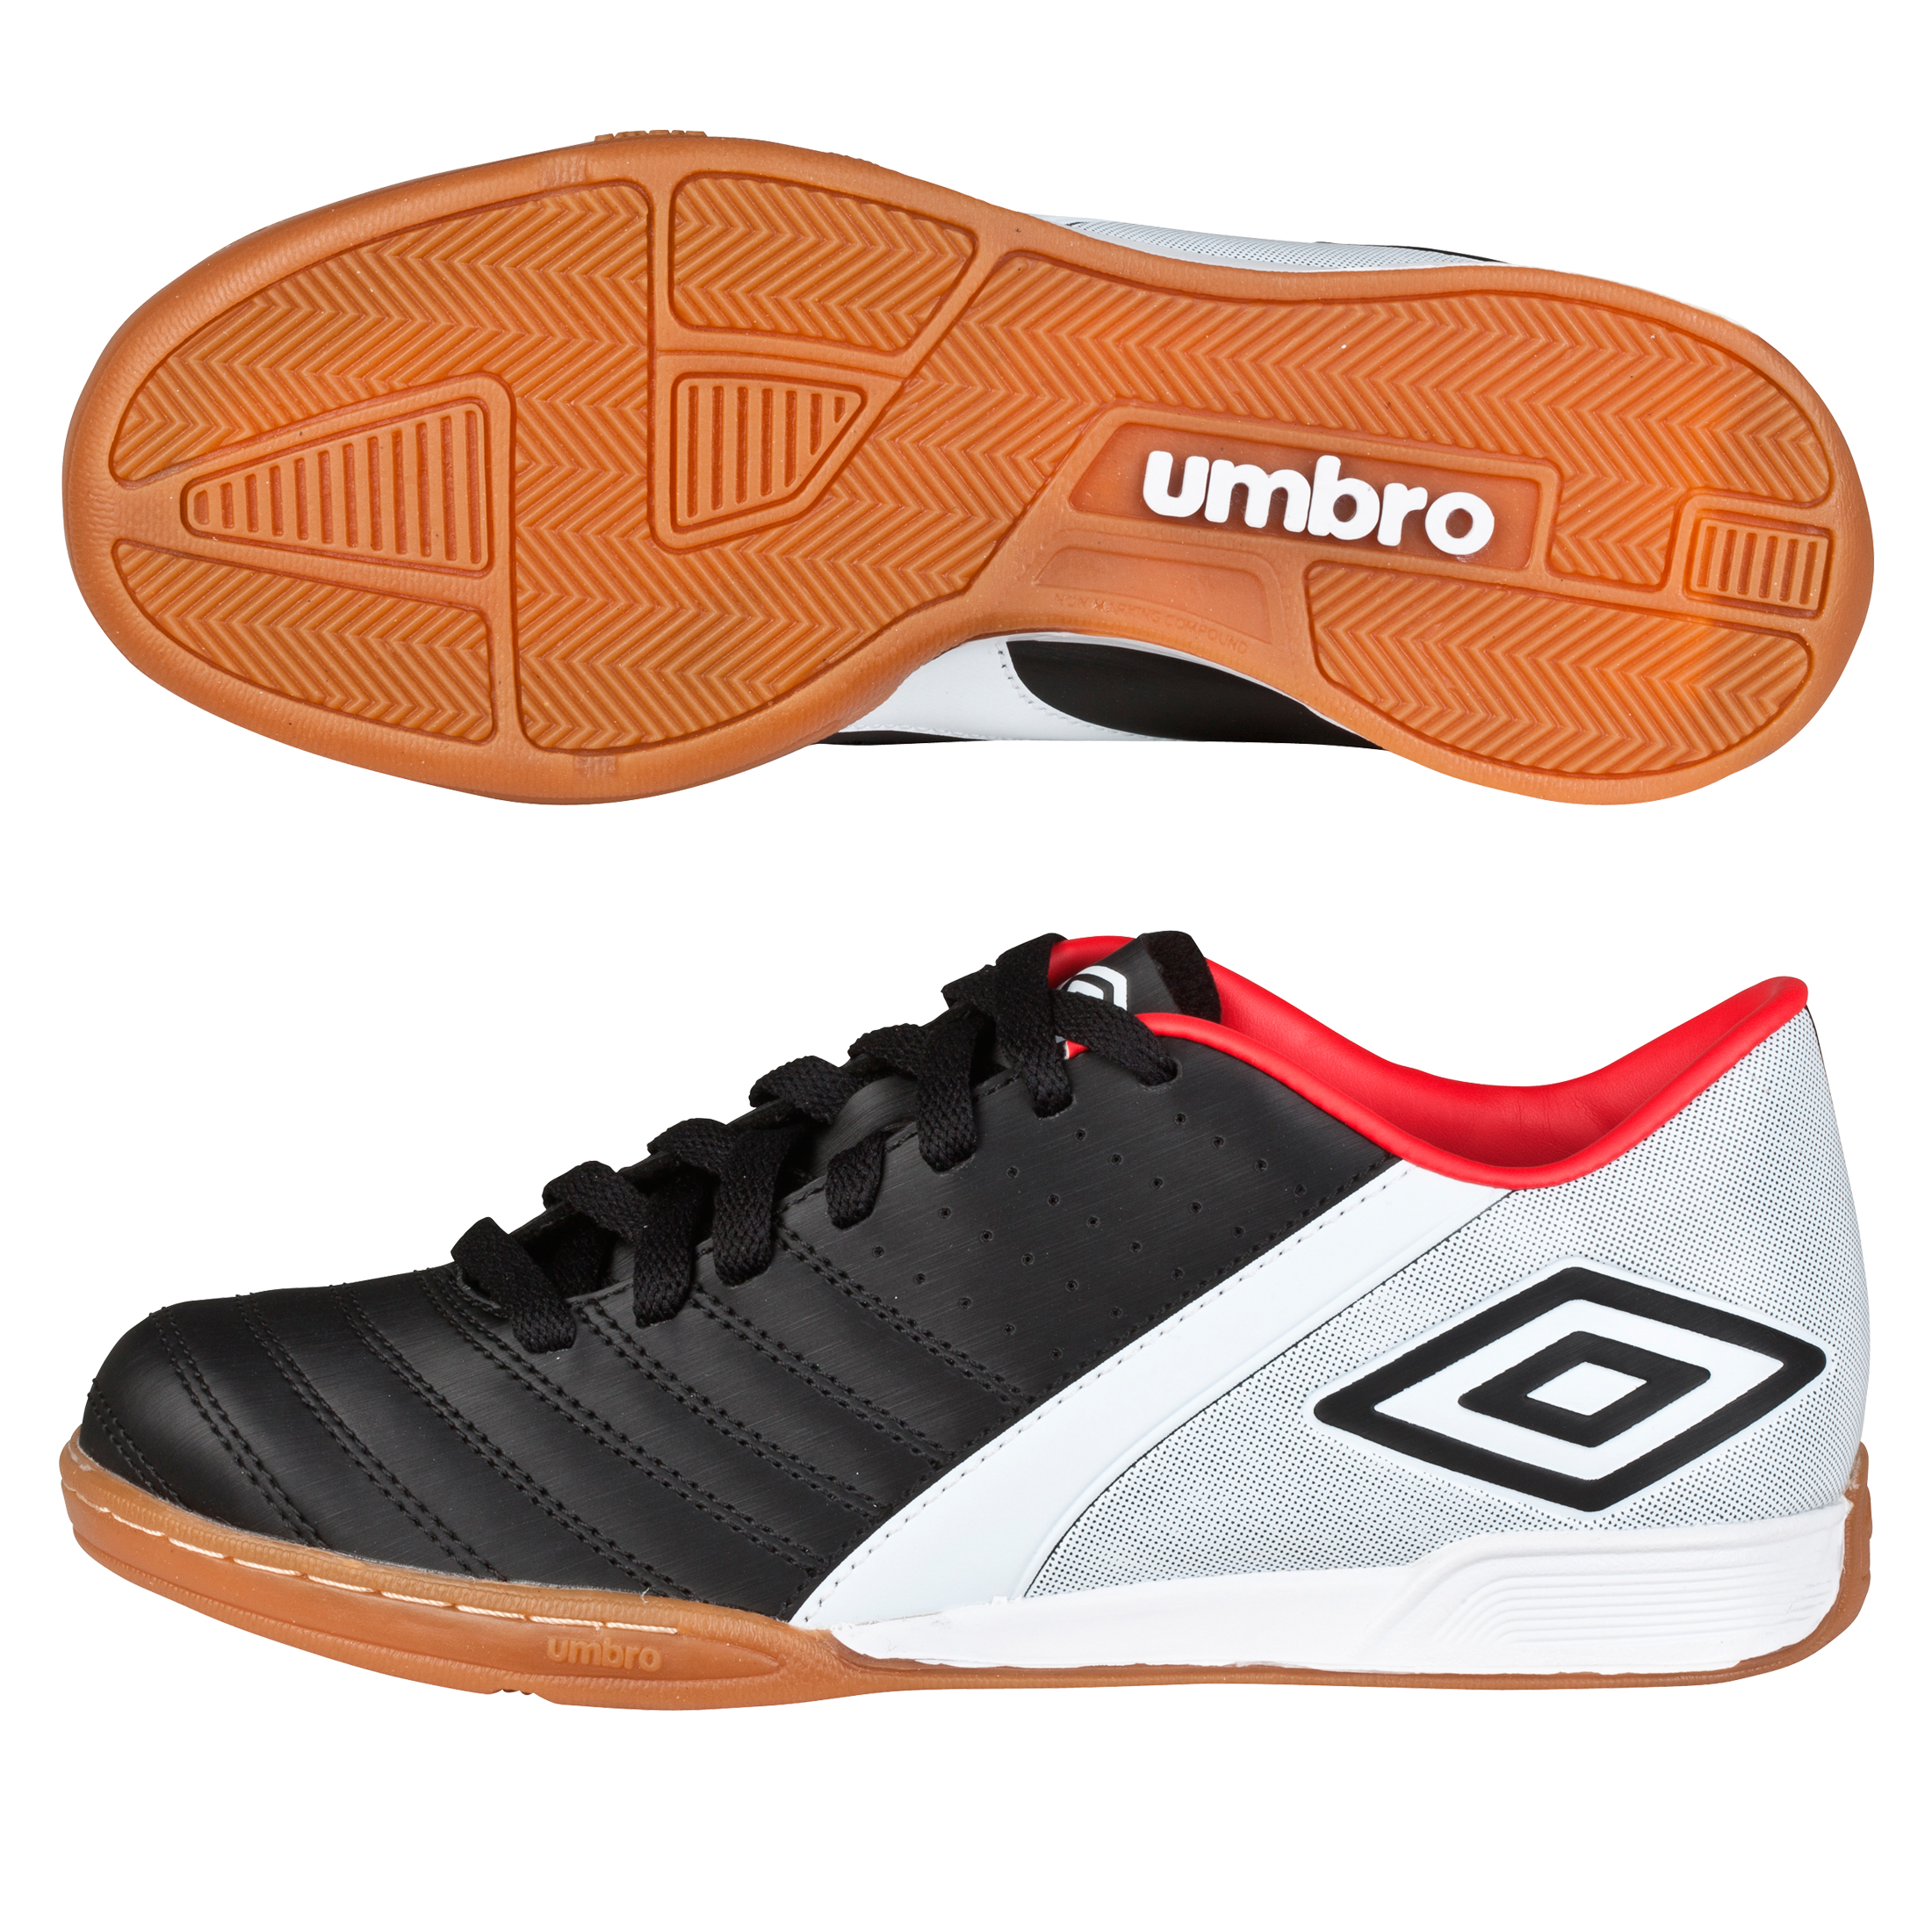 Umbro Extremis Trainers - Black/White/True Red - Kids